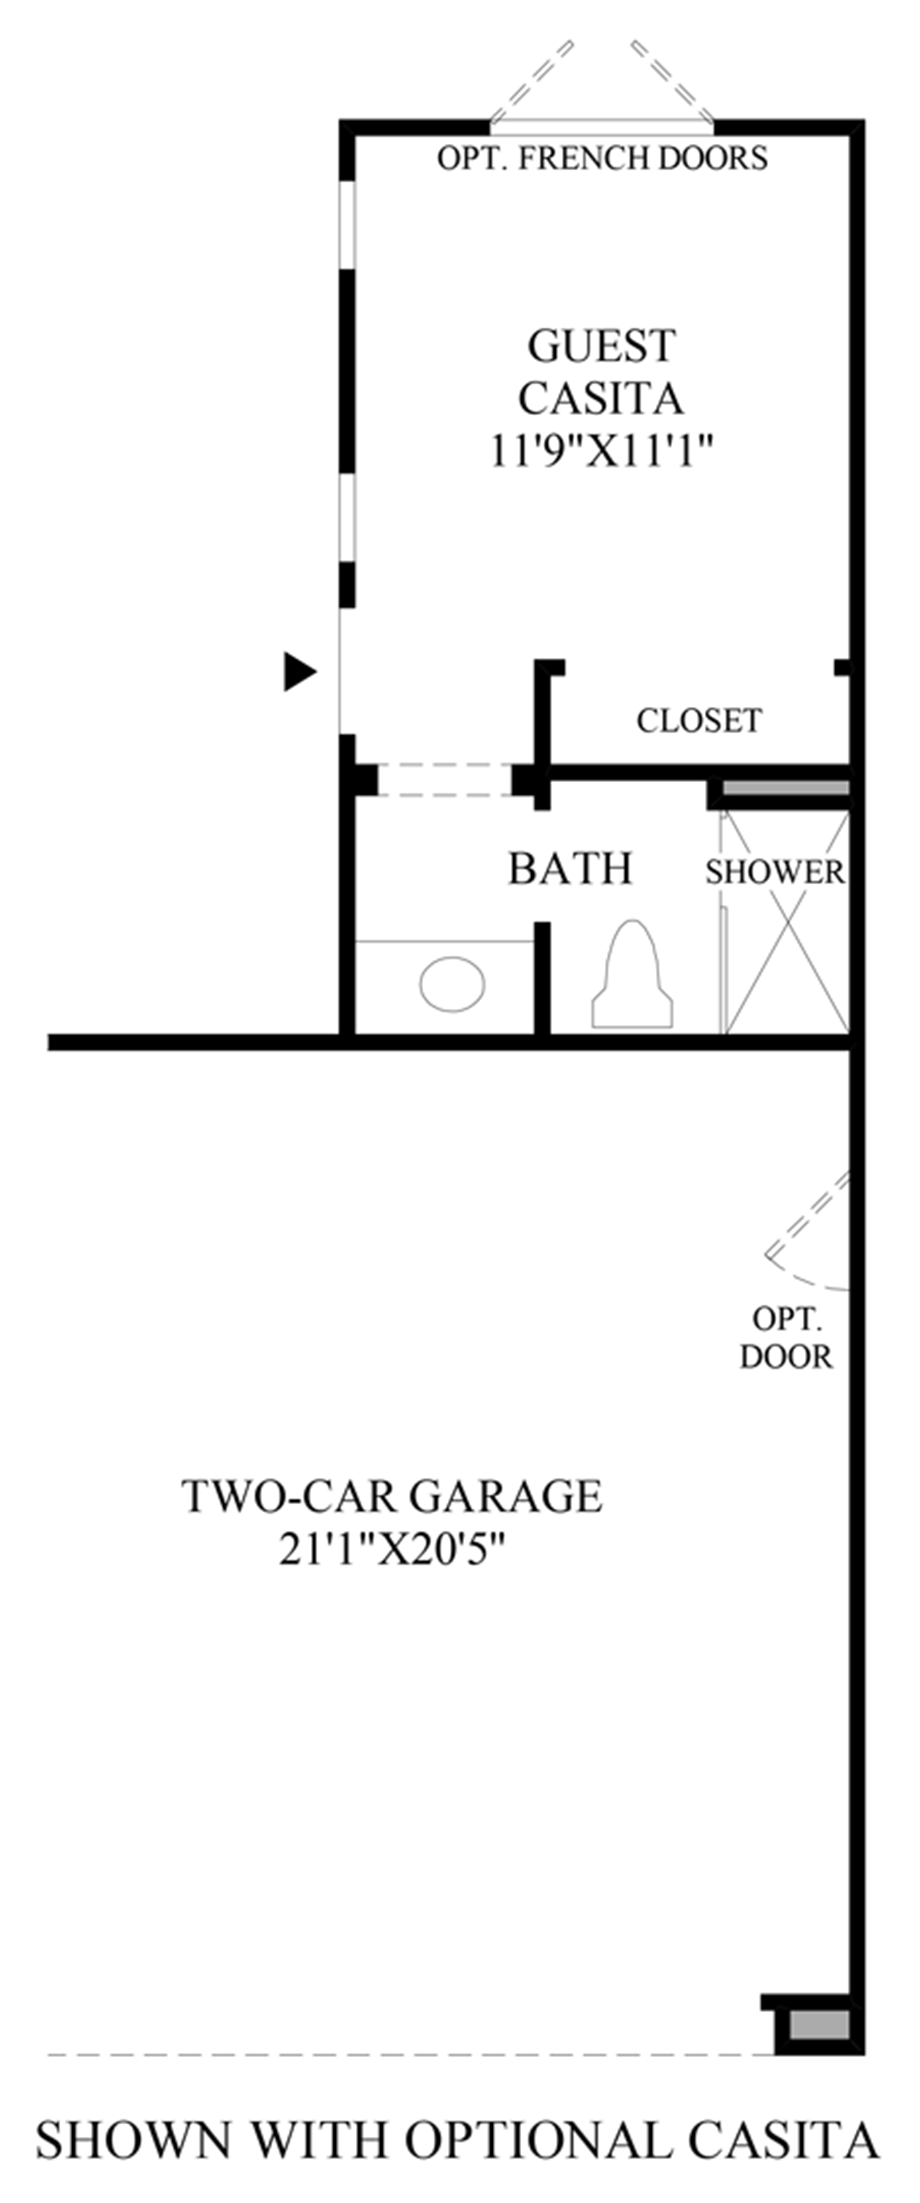 Optional Casita Floor Plan